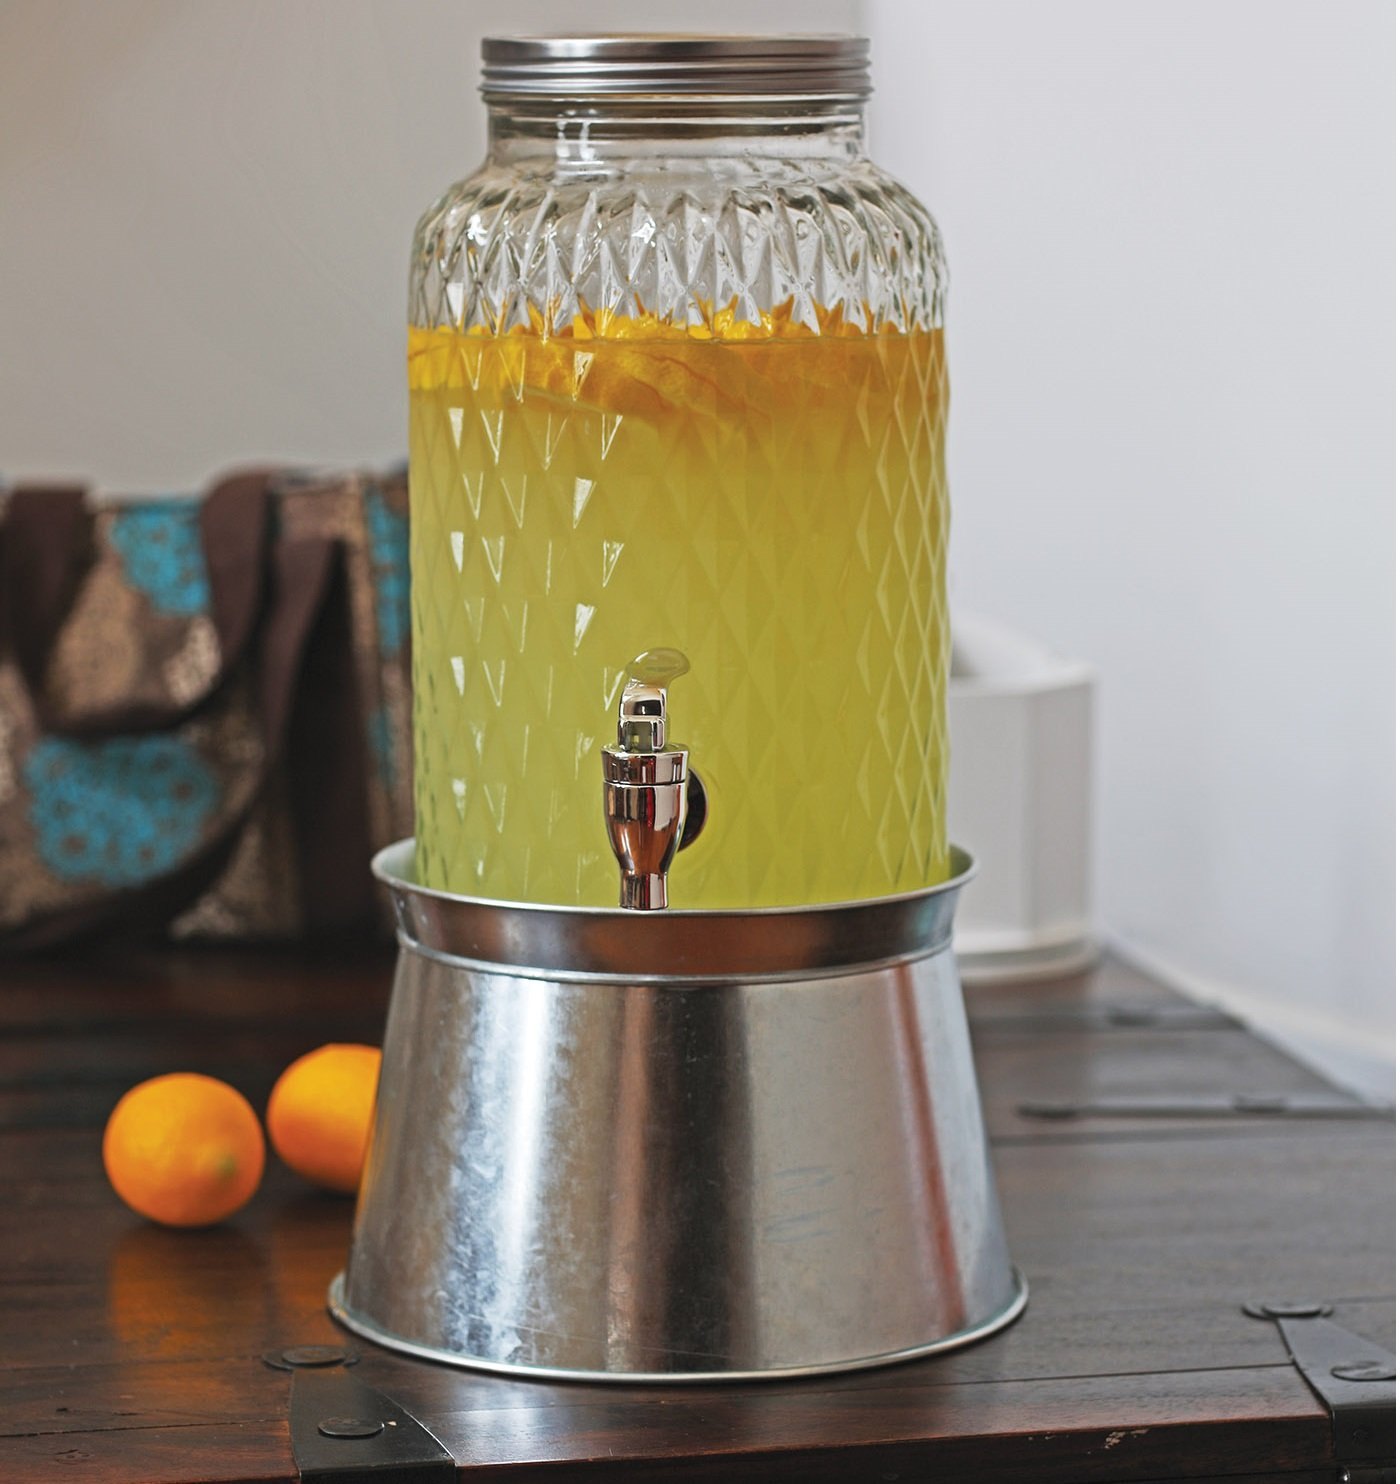 Amazon Com Circleware Treasure Beverage Dispenser With Stand And Metal Lid Sun Tea Jar With Spigot Entertainment Kitchen Glassware Water Pitcher For Kombucha Juice Cold Drinks 1 5 Gallon Diamond Iced Beverage